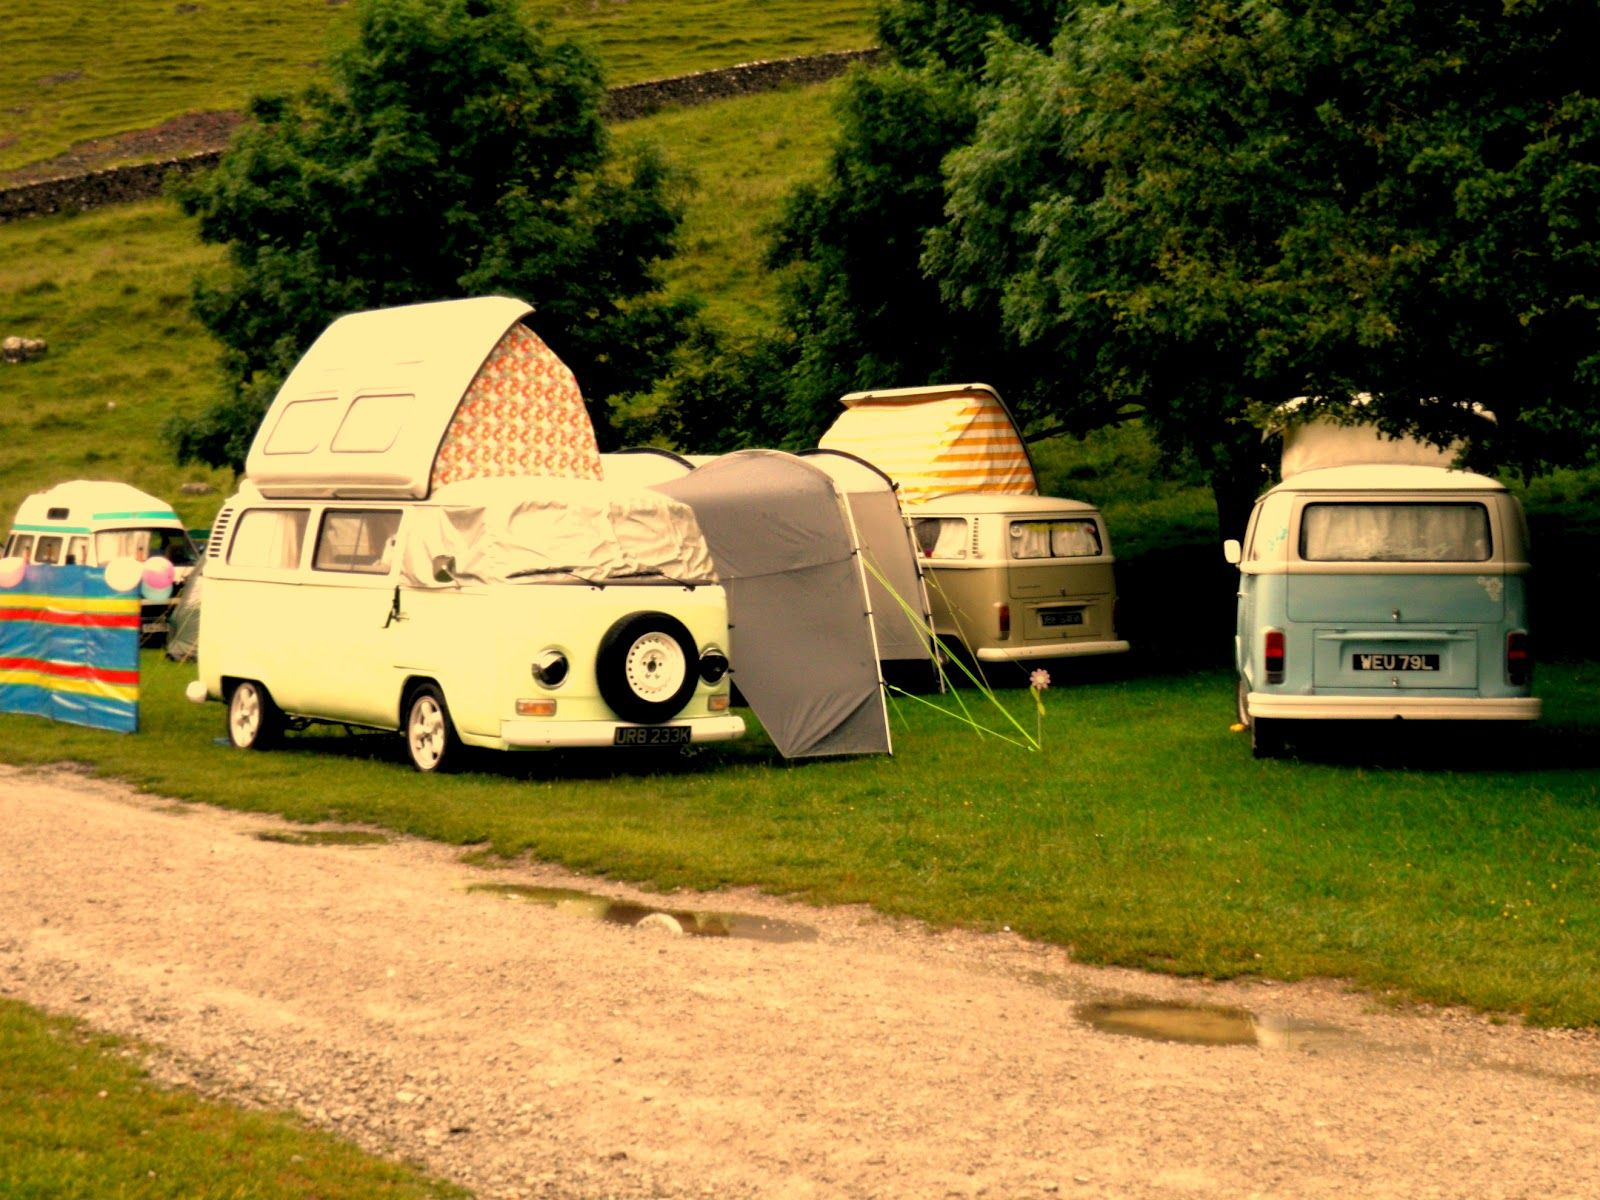 I'm not sure what type of camping vans these are, but I know that I really want and need one!  Image via Ruche from 3/16/2012.